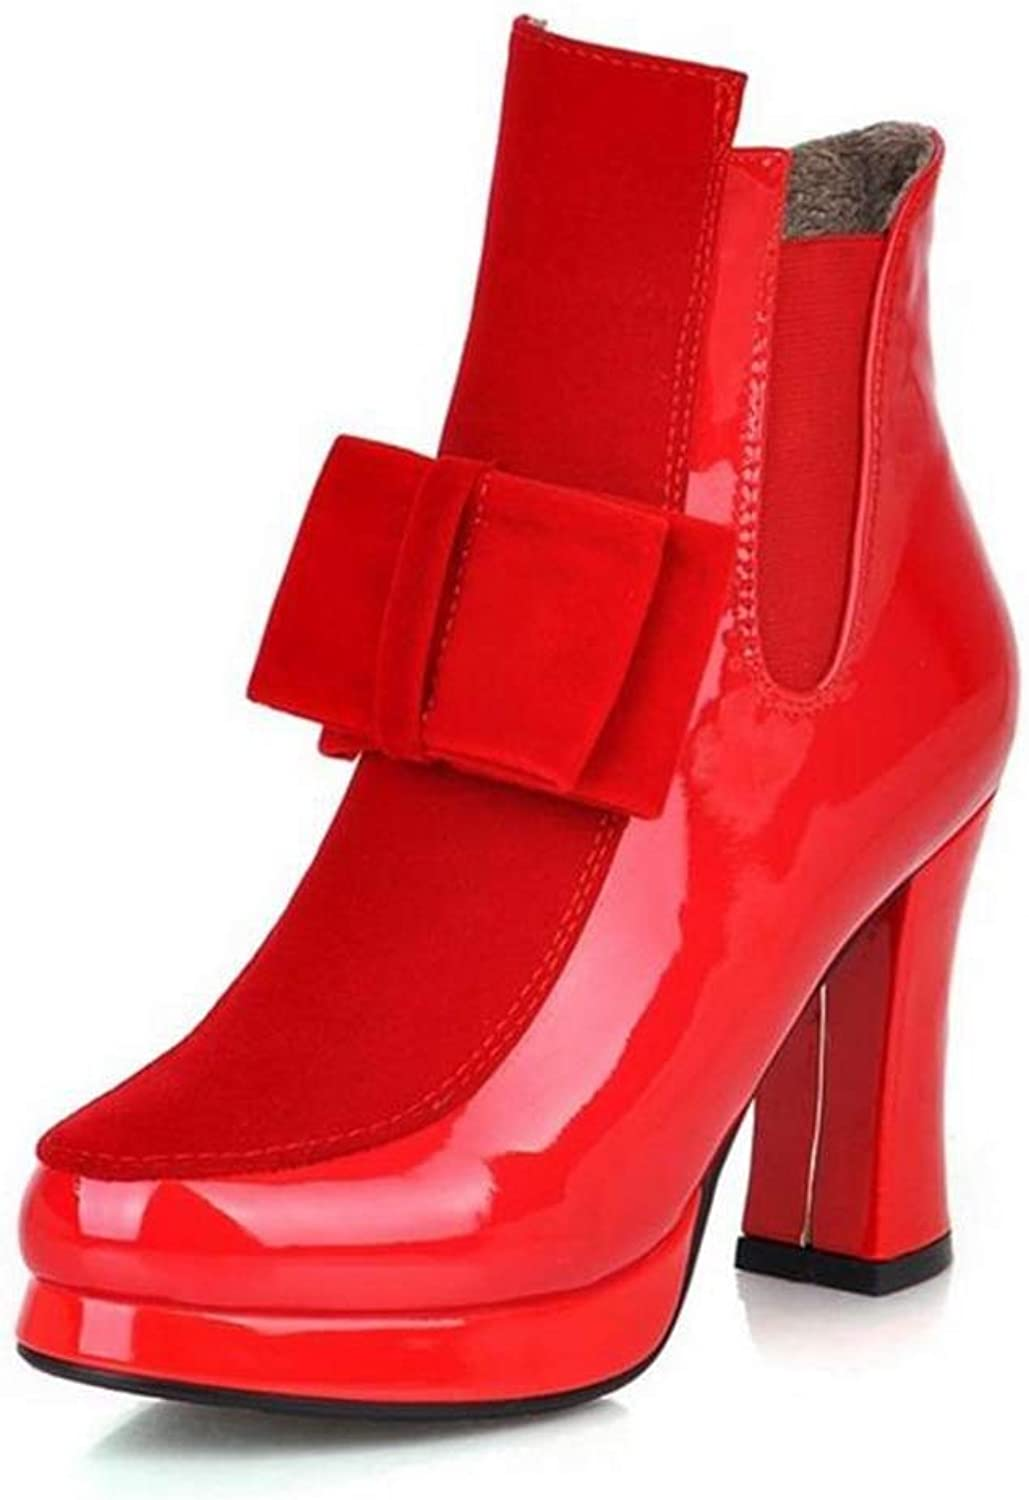 T-JULY Women Patent Leather High Heel Mid Calf Boots Platform Sexy Bowtie Warm Winter Boot Footwear shoes Size 34-43